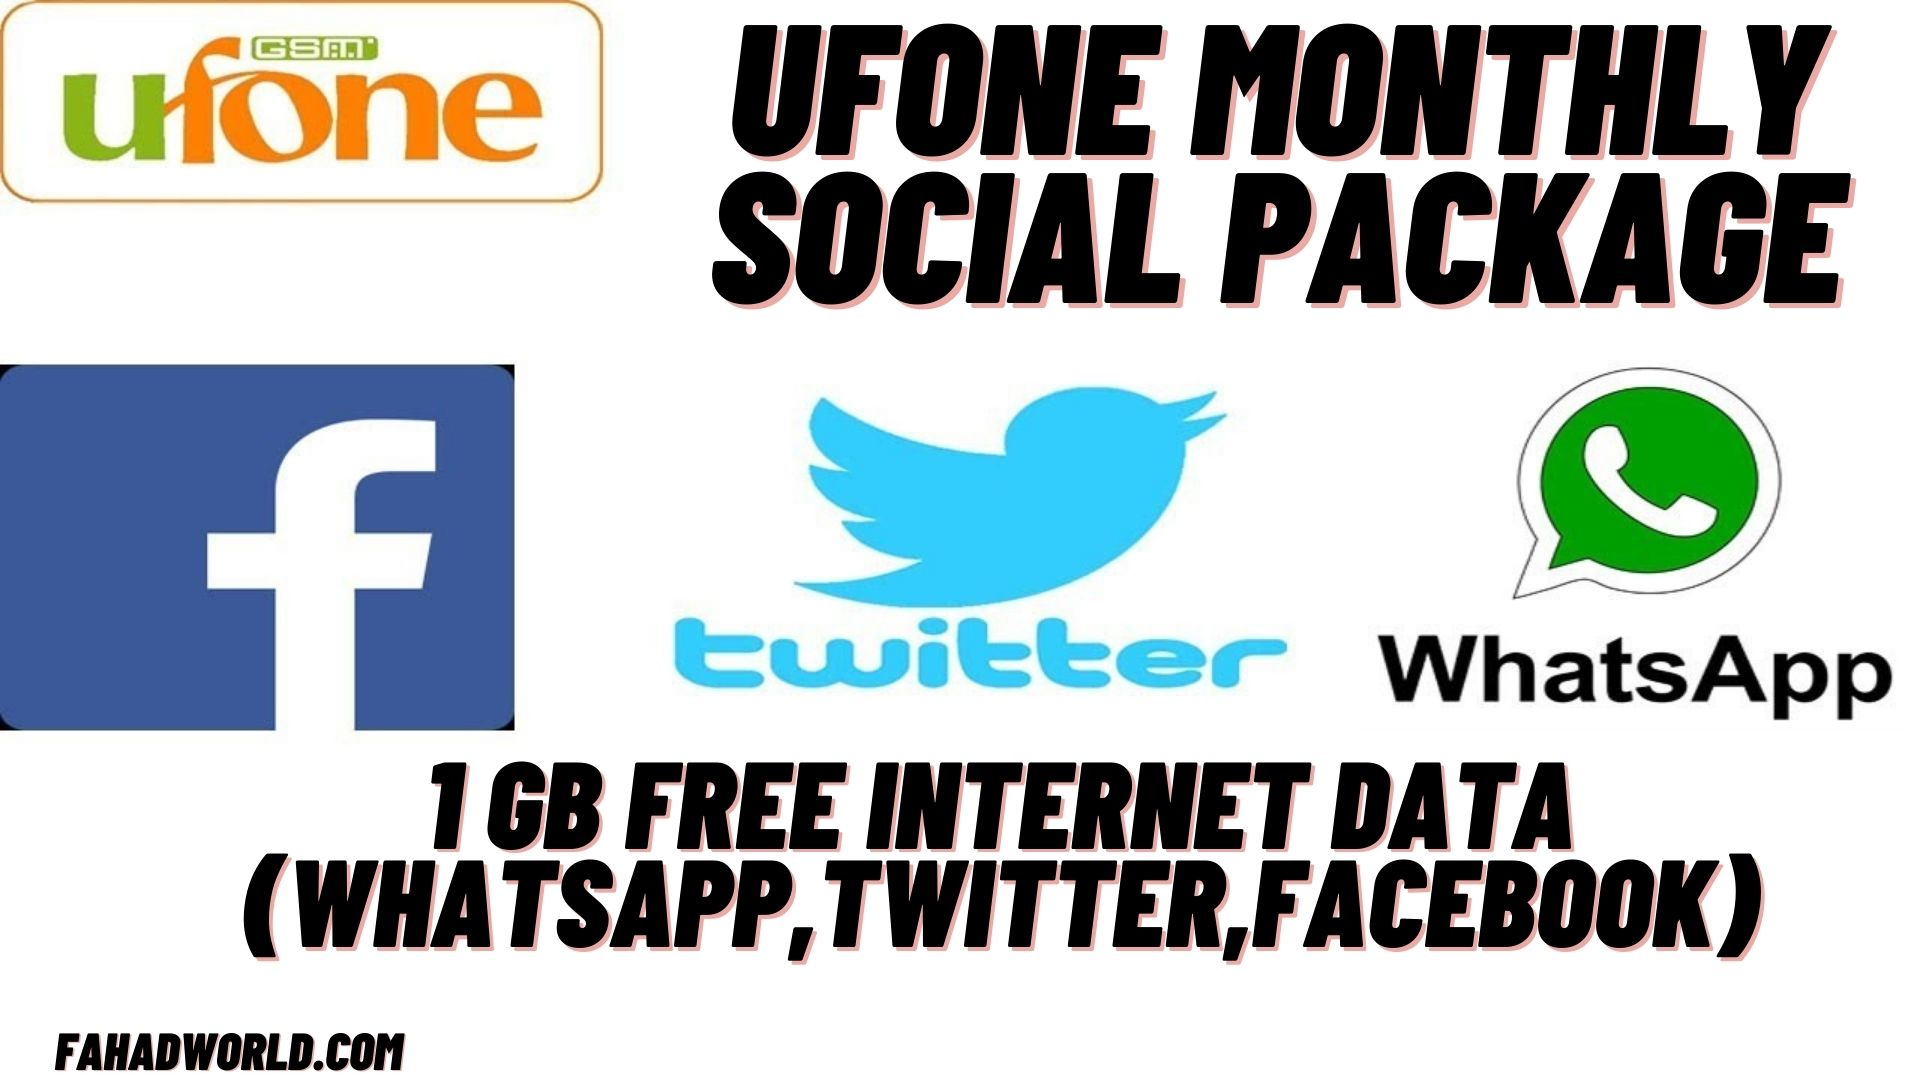 Ufone Monthly Social Package